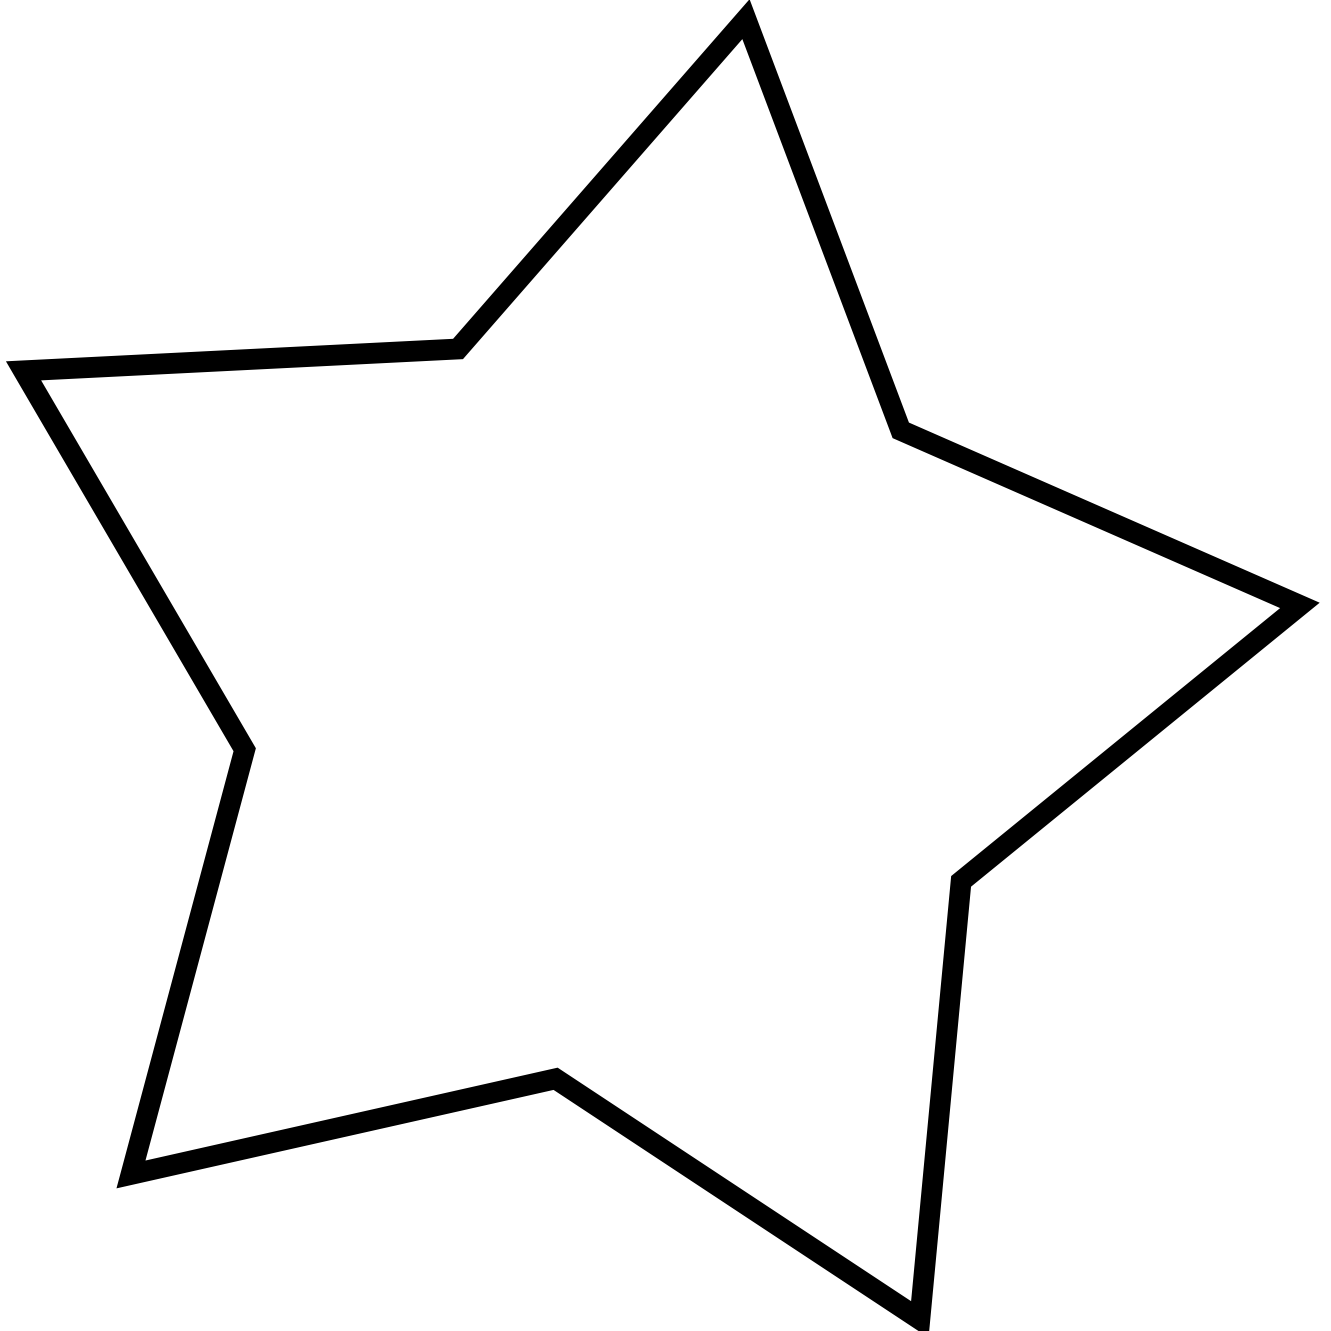 Clipart star black and white picture free stock Star Clipart Black And White | Clipart Panda - Free Clipart Images picture free stock